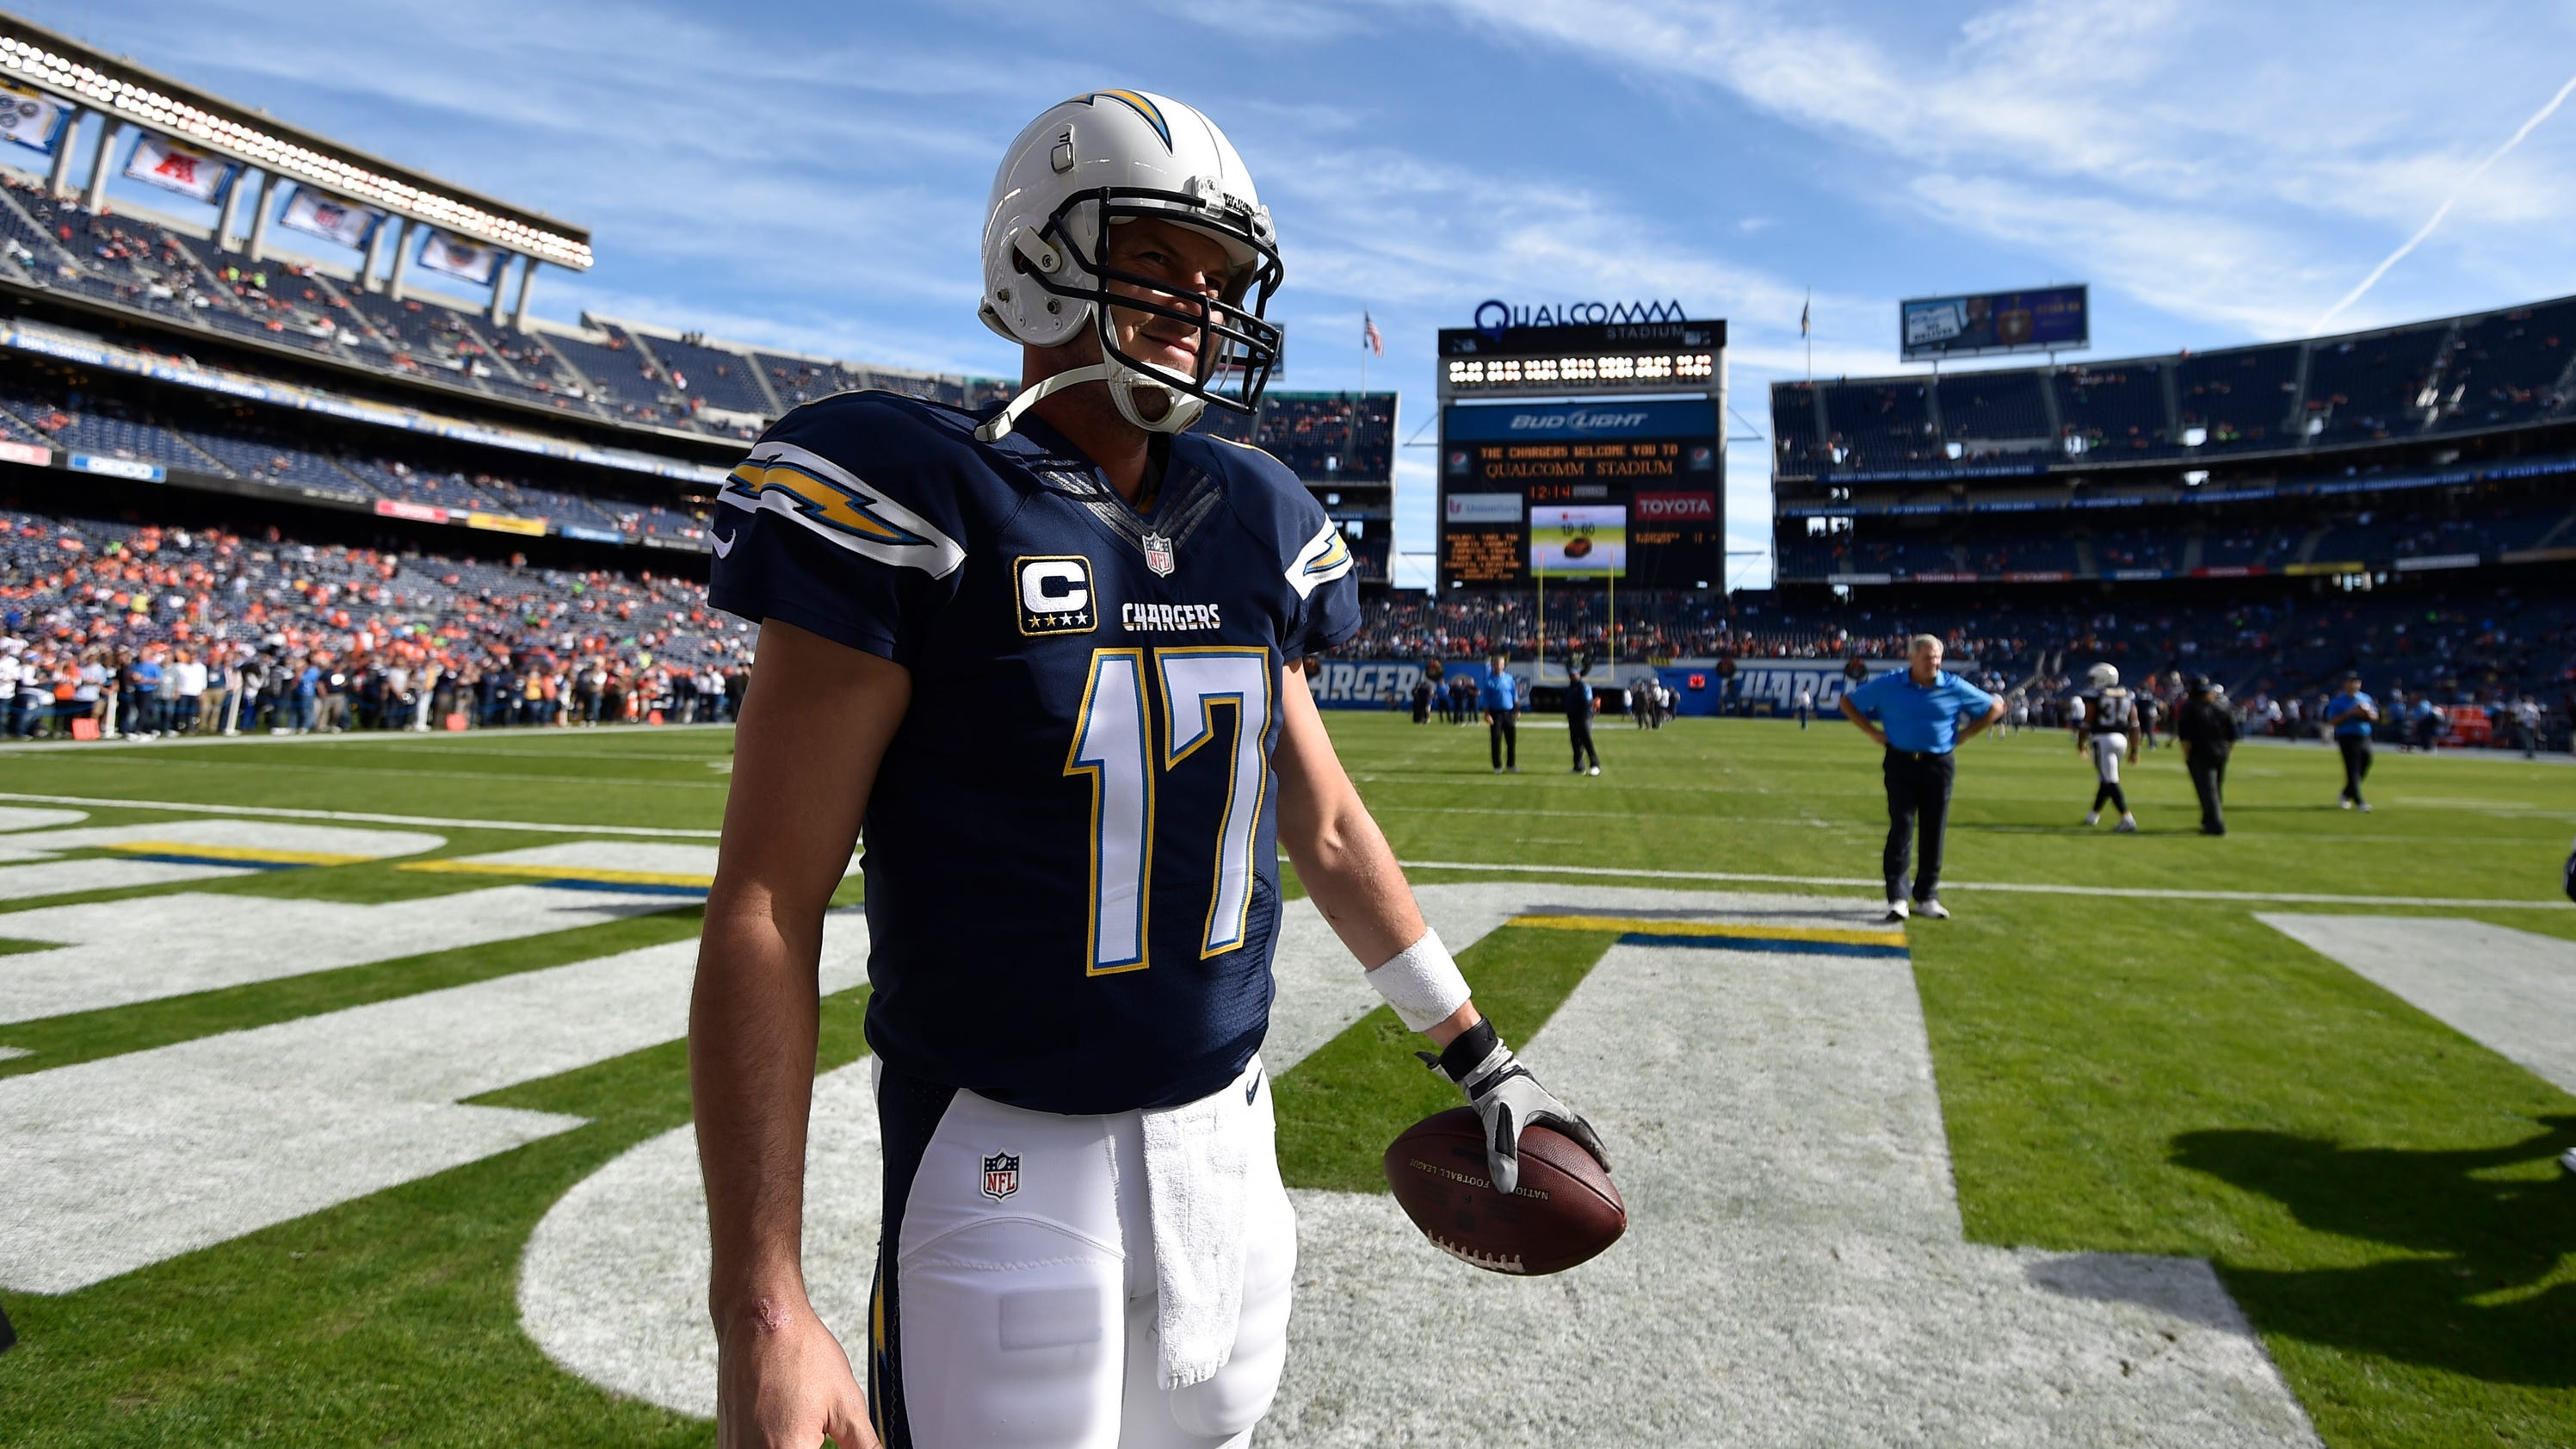 Chargers To Play Perhaps Their Final Home Game In San Diego